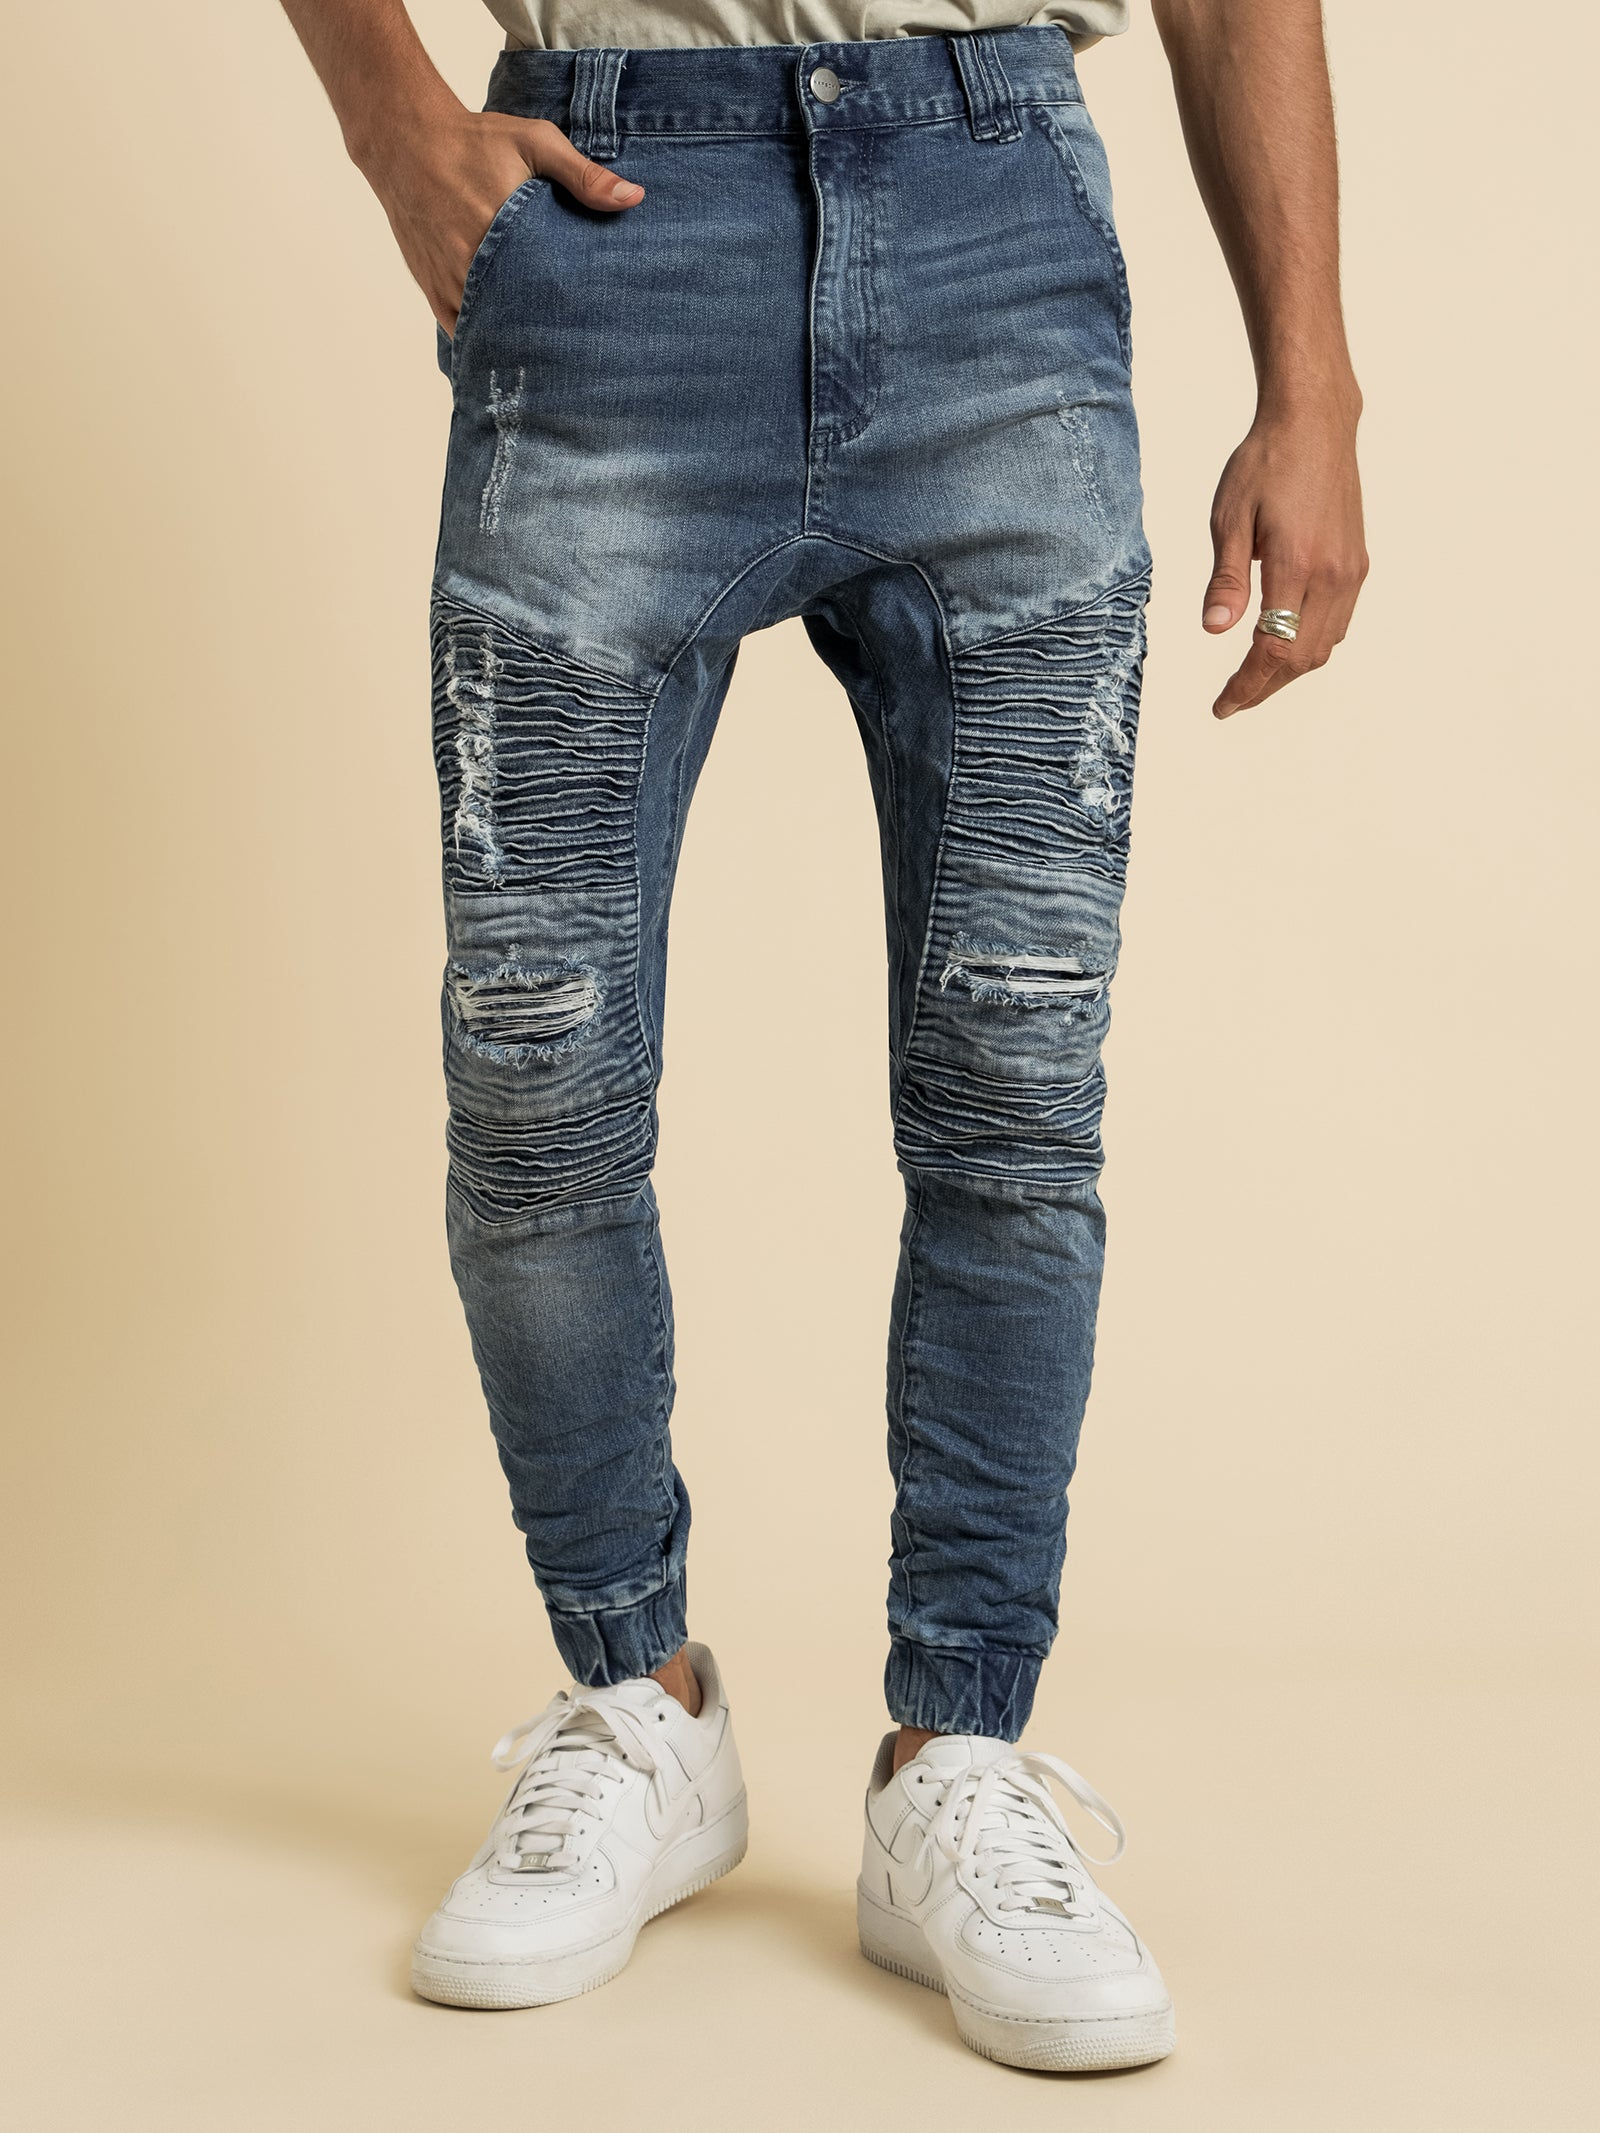 Hellcat Tight Tapered Jeans in Kentucky Blue Denim